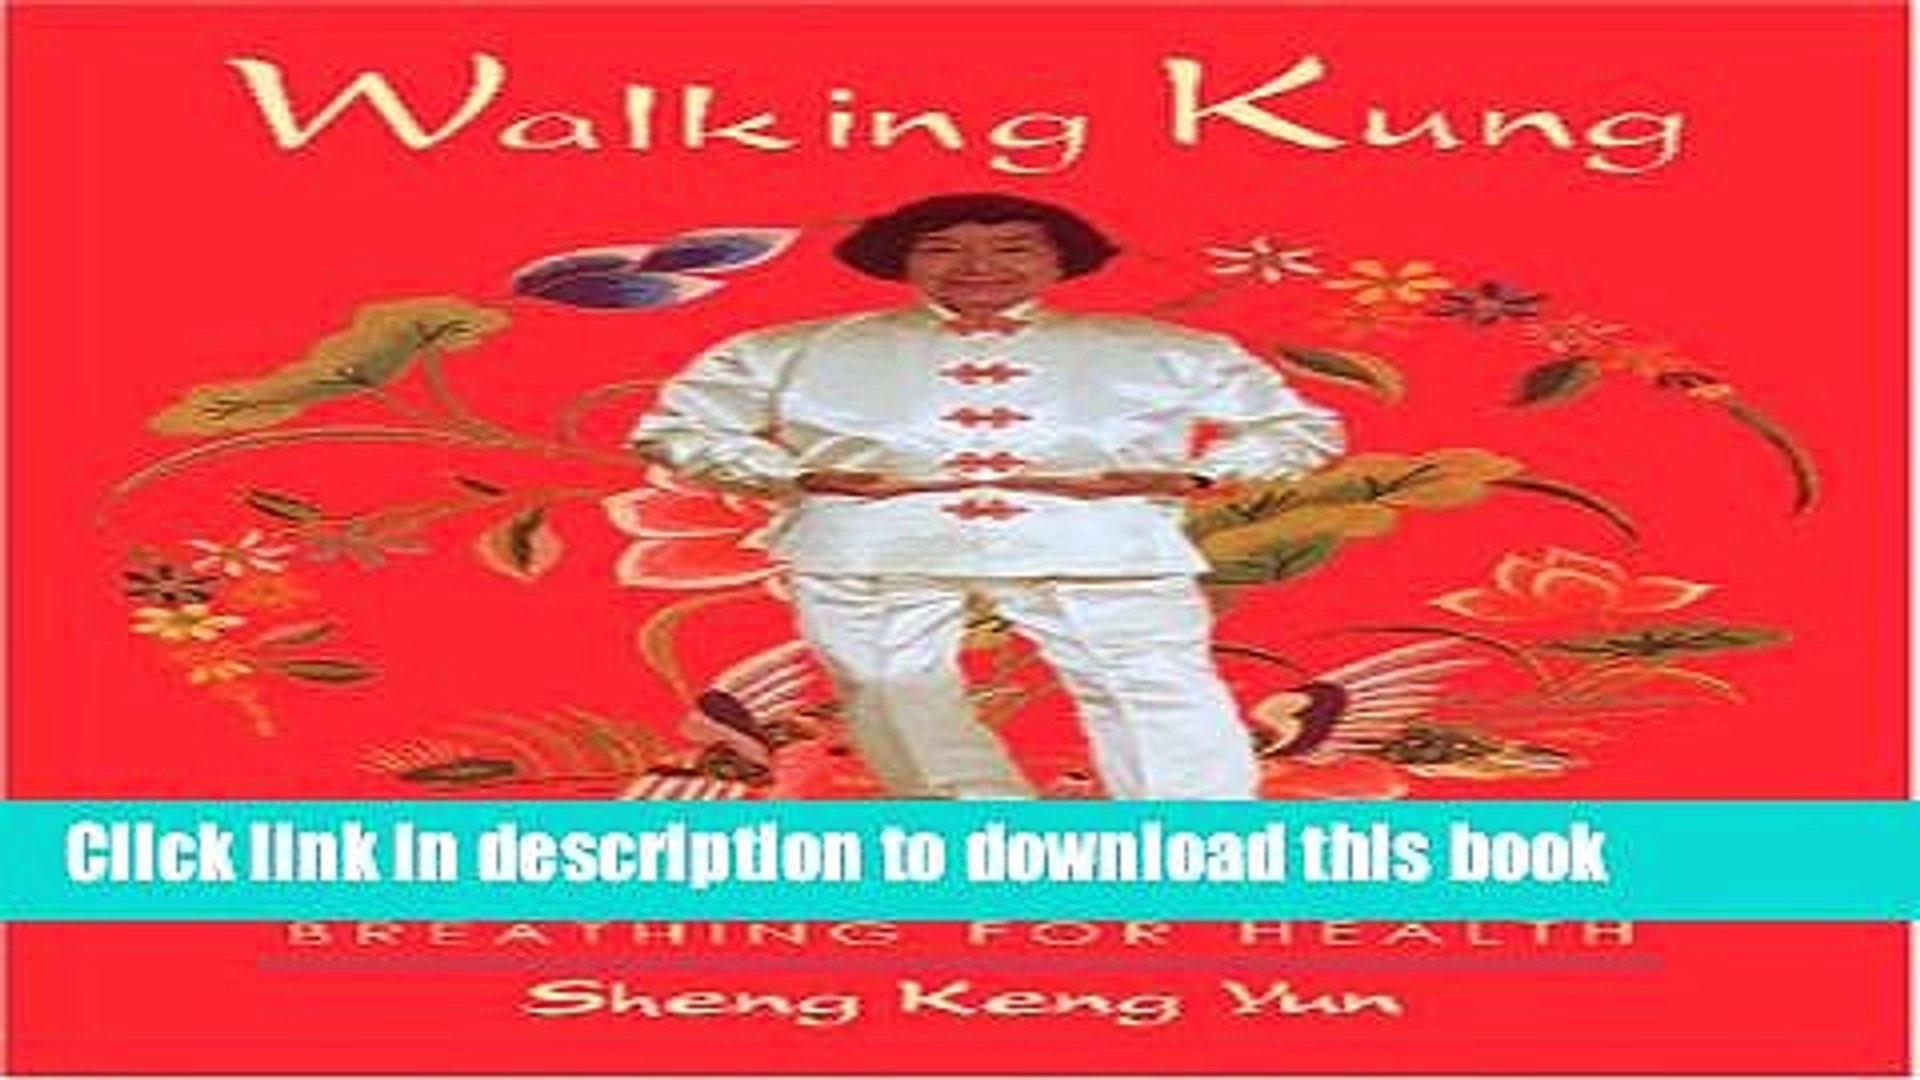 [Download] Walking Kung: Breathing for Health Book Online